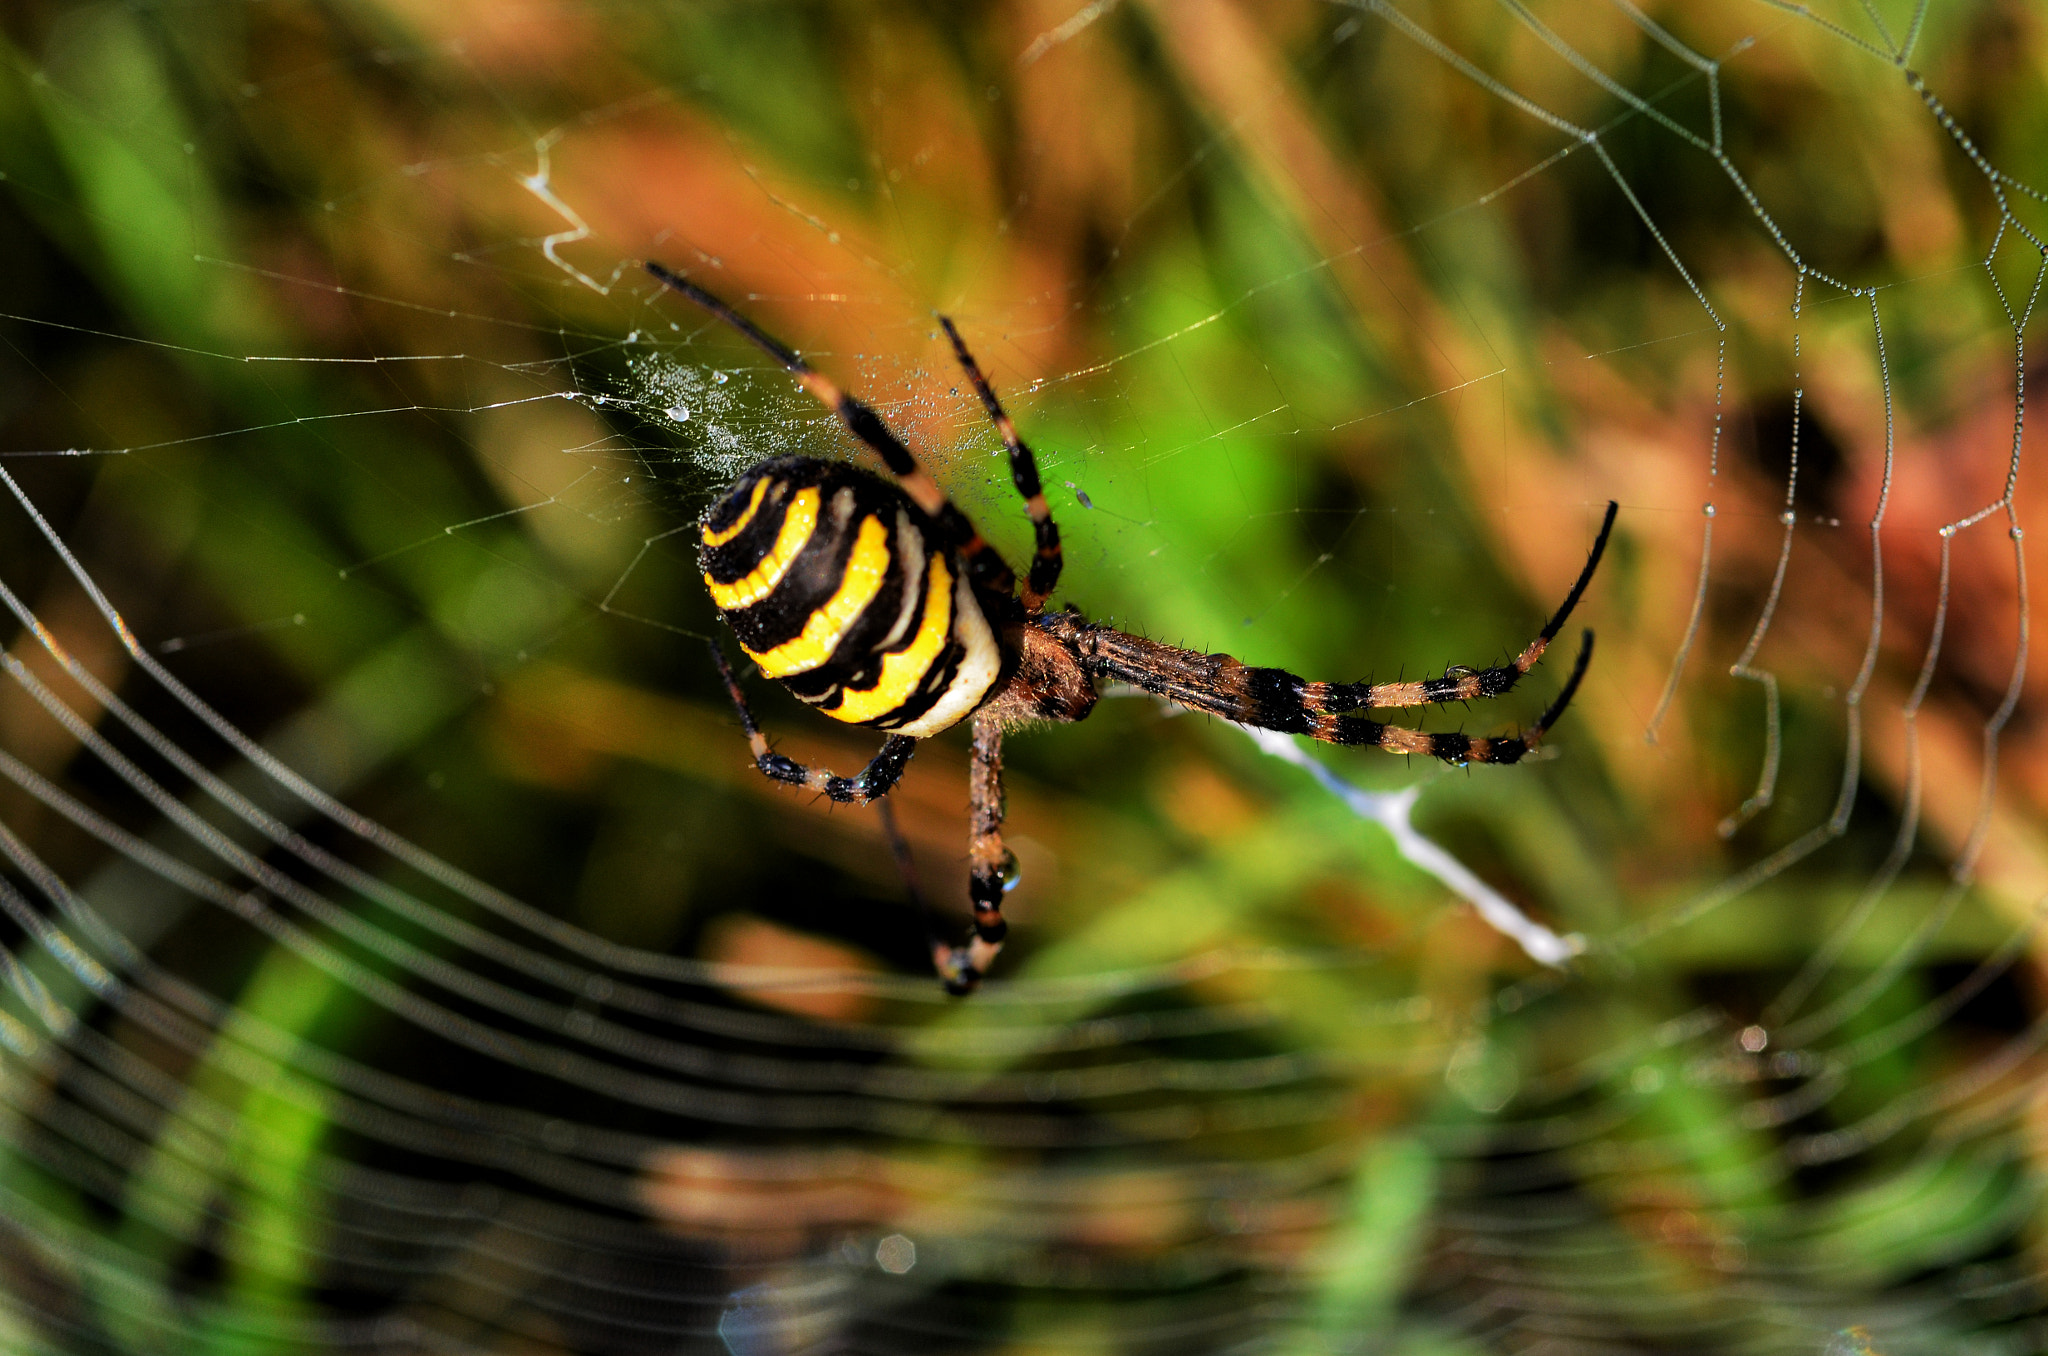 Photograph Huge spider by Silvia Peschiera on 500px